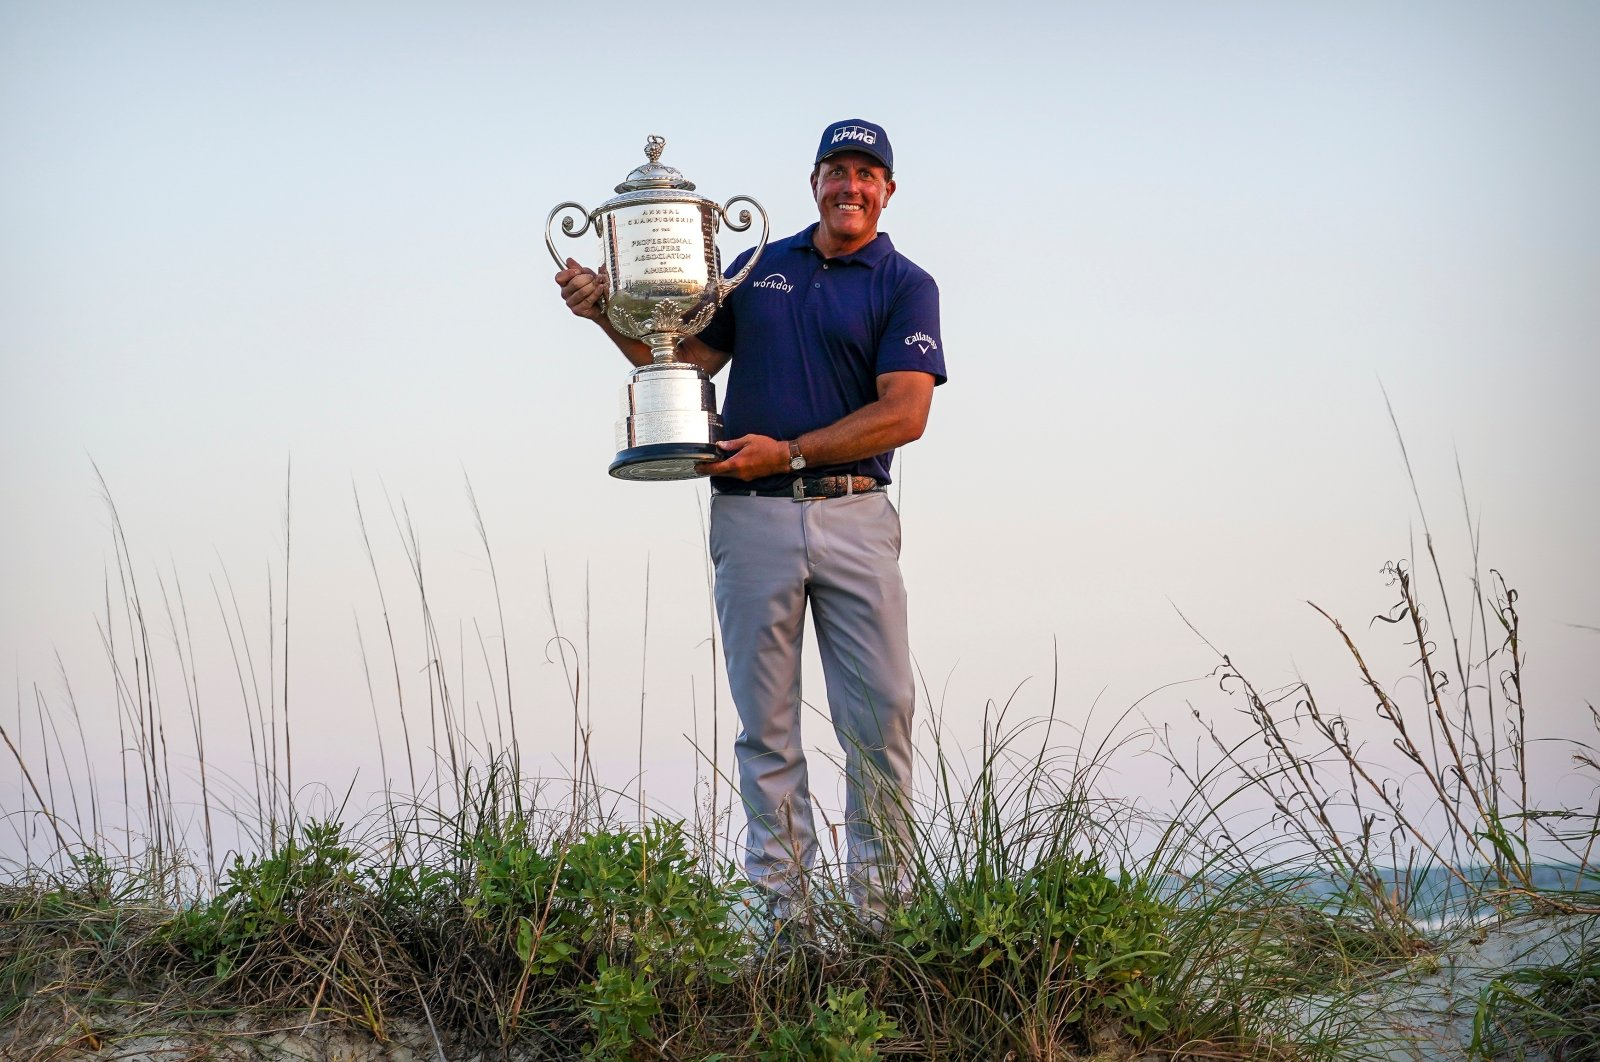 U.S. golfer Phil Mickelson poses with the Wanamaker Trophy after winning the PGA Championship golf tournament, Kiawah Island, South Carolina, U.S., May 23, 2021 (Reuters Photo)